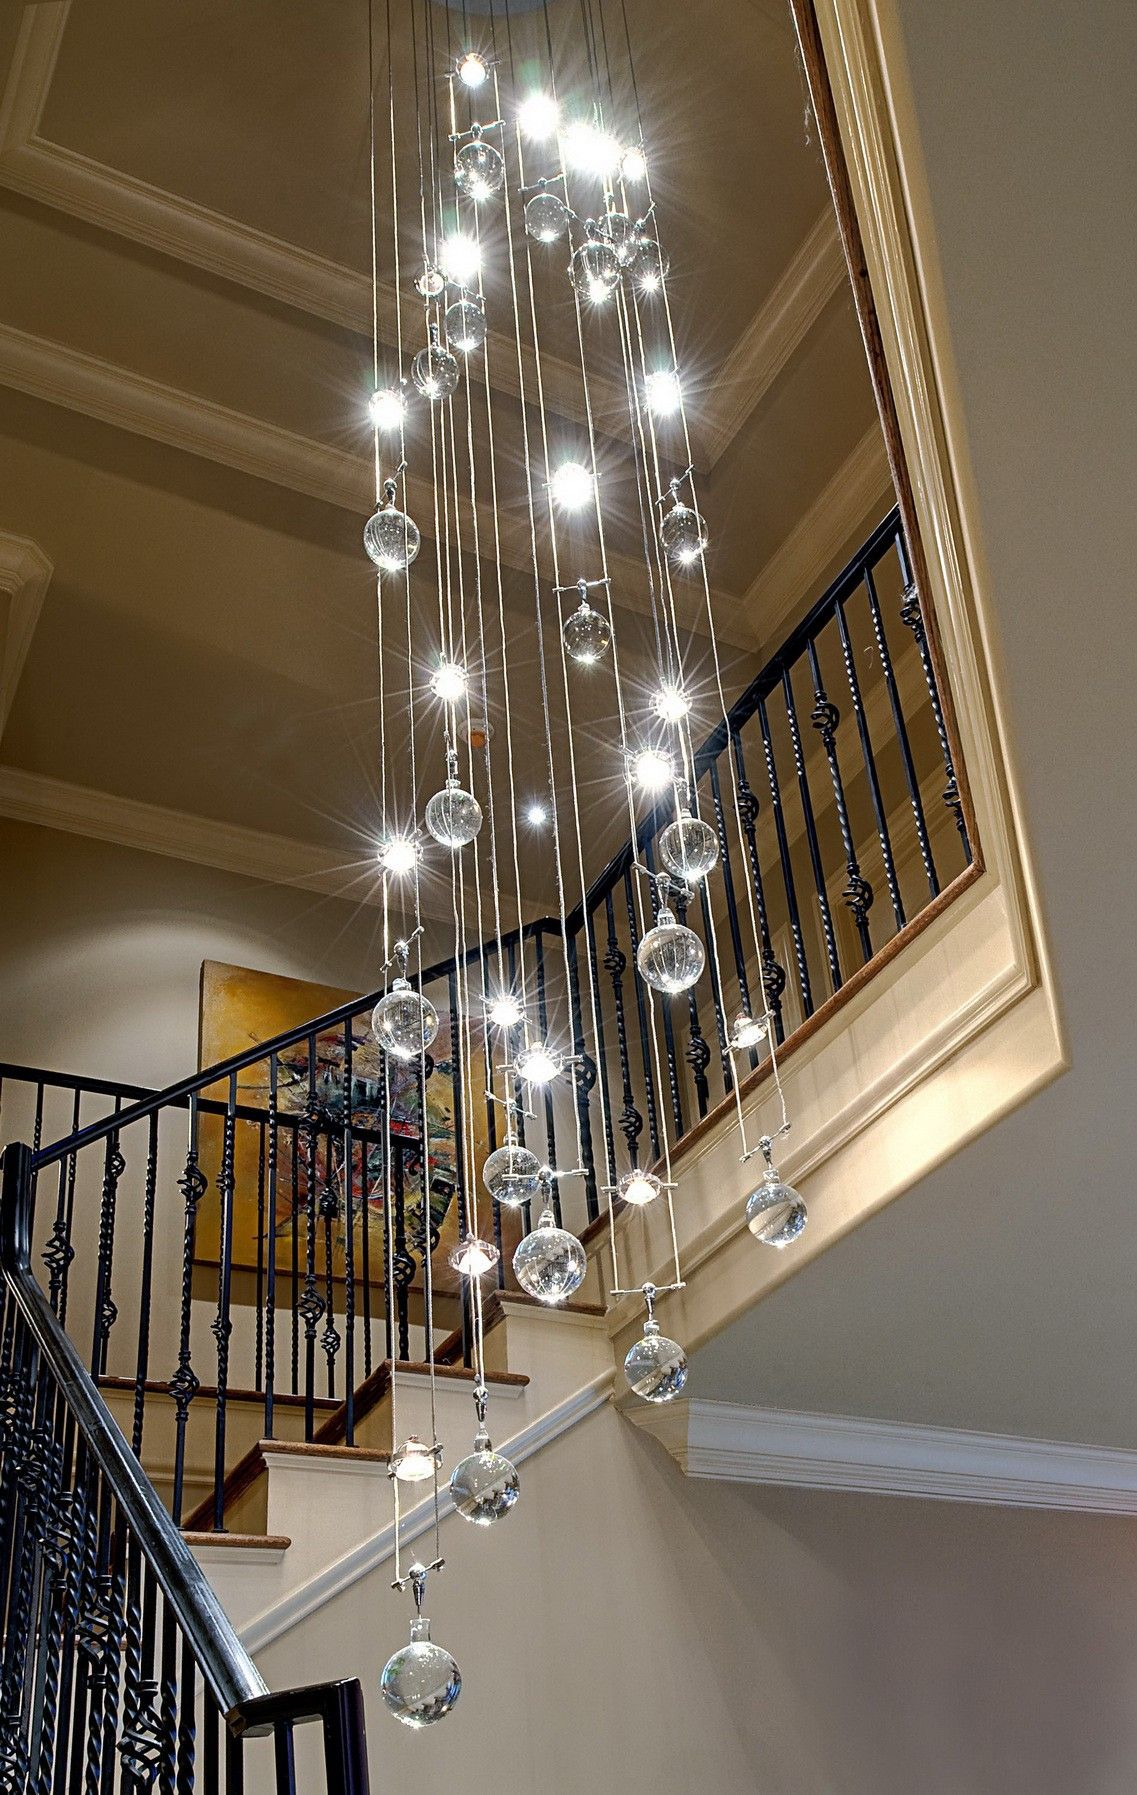 Foyer Chandelier Window : Greet your guest with dazzling foyer chandeliers cool